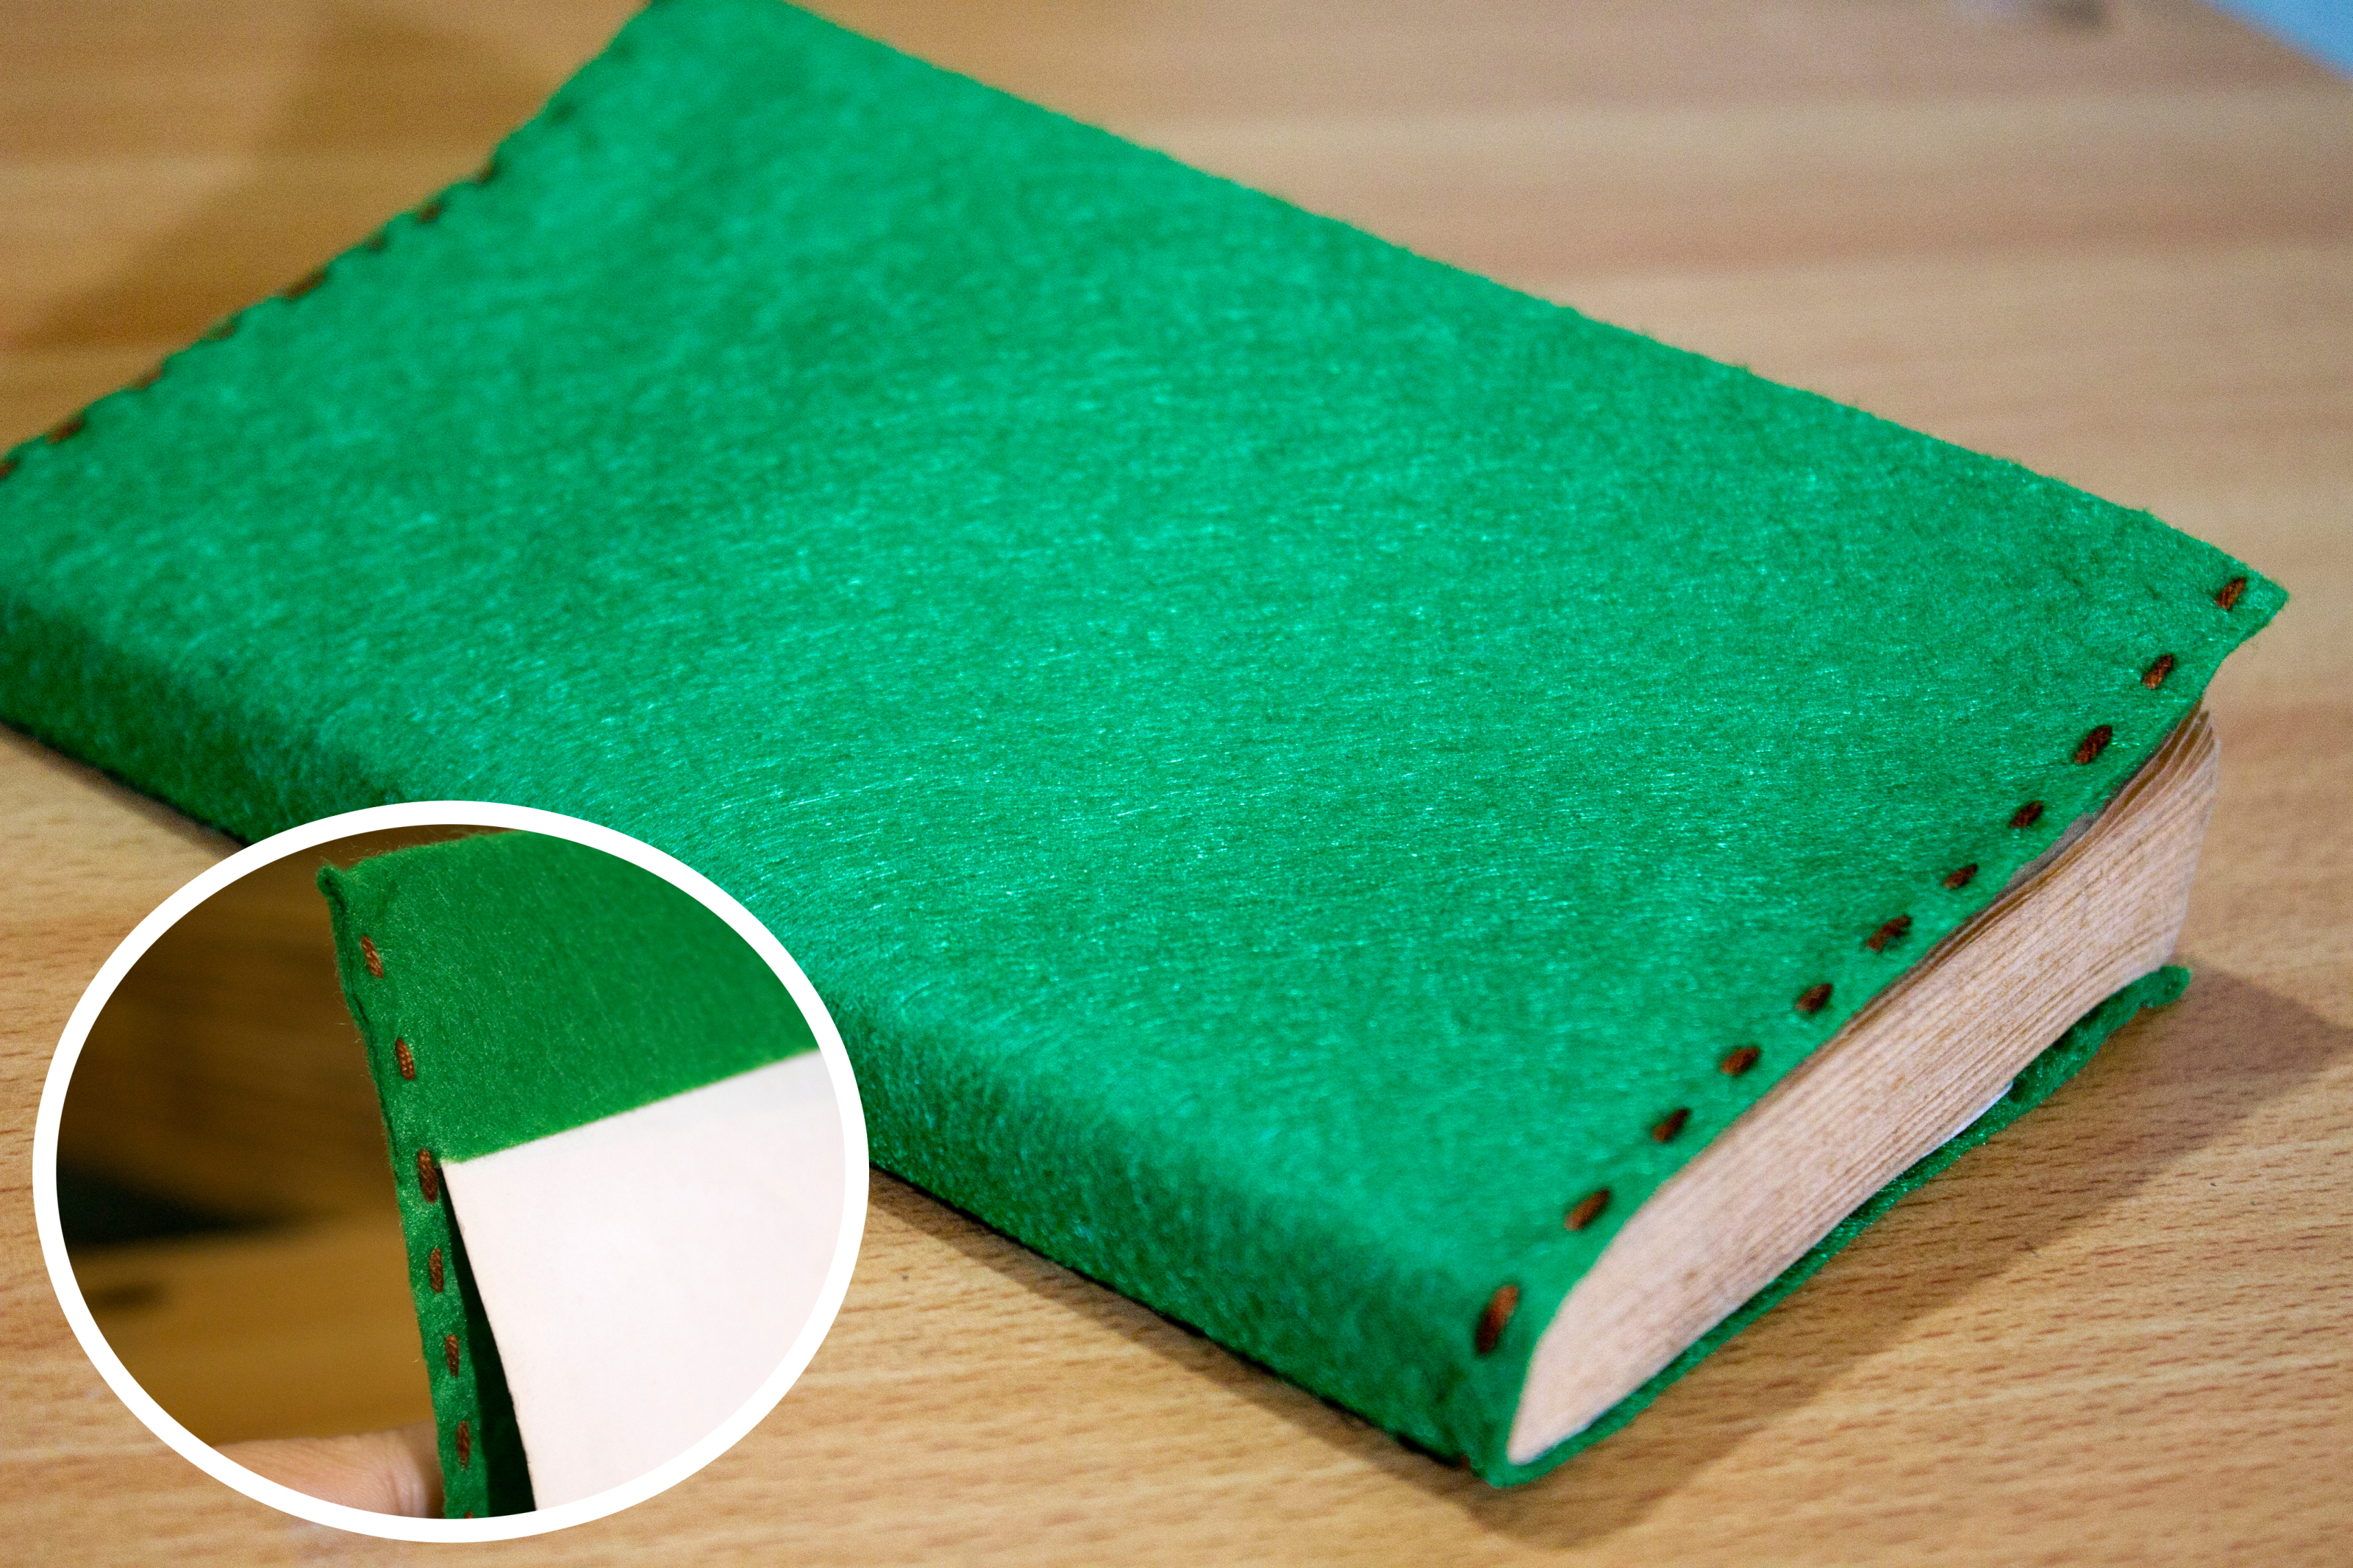 4 Ways to Make a Book Cover  wikiHow